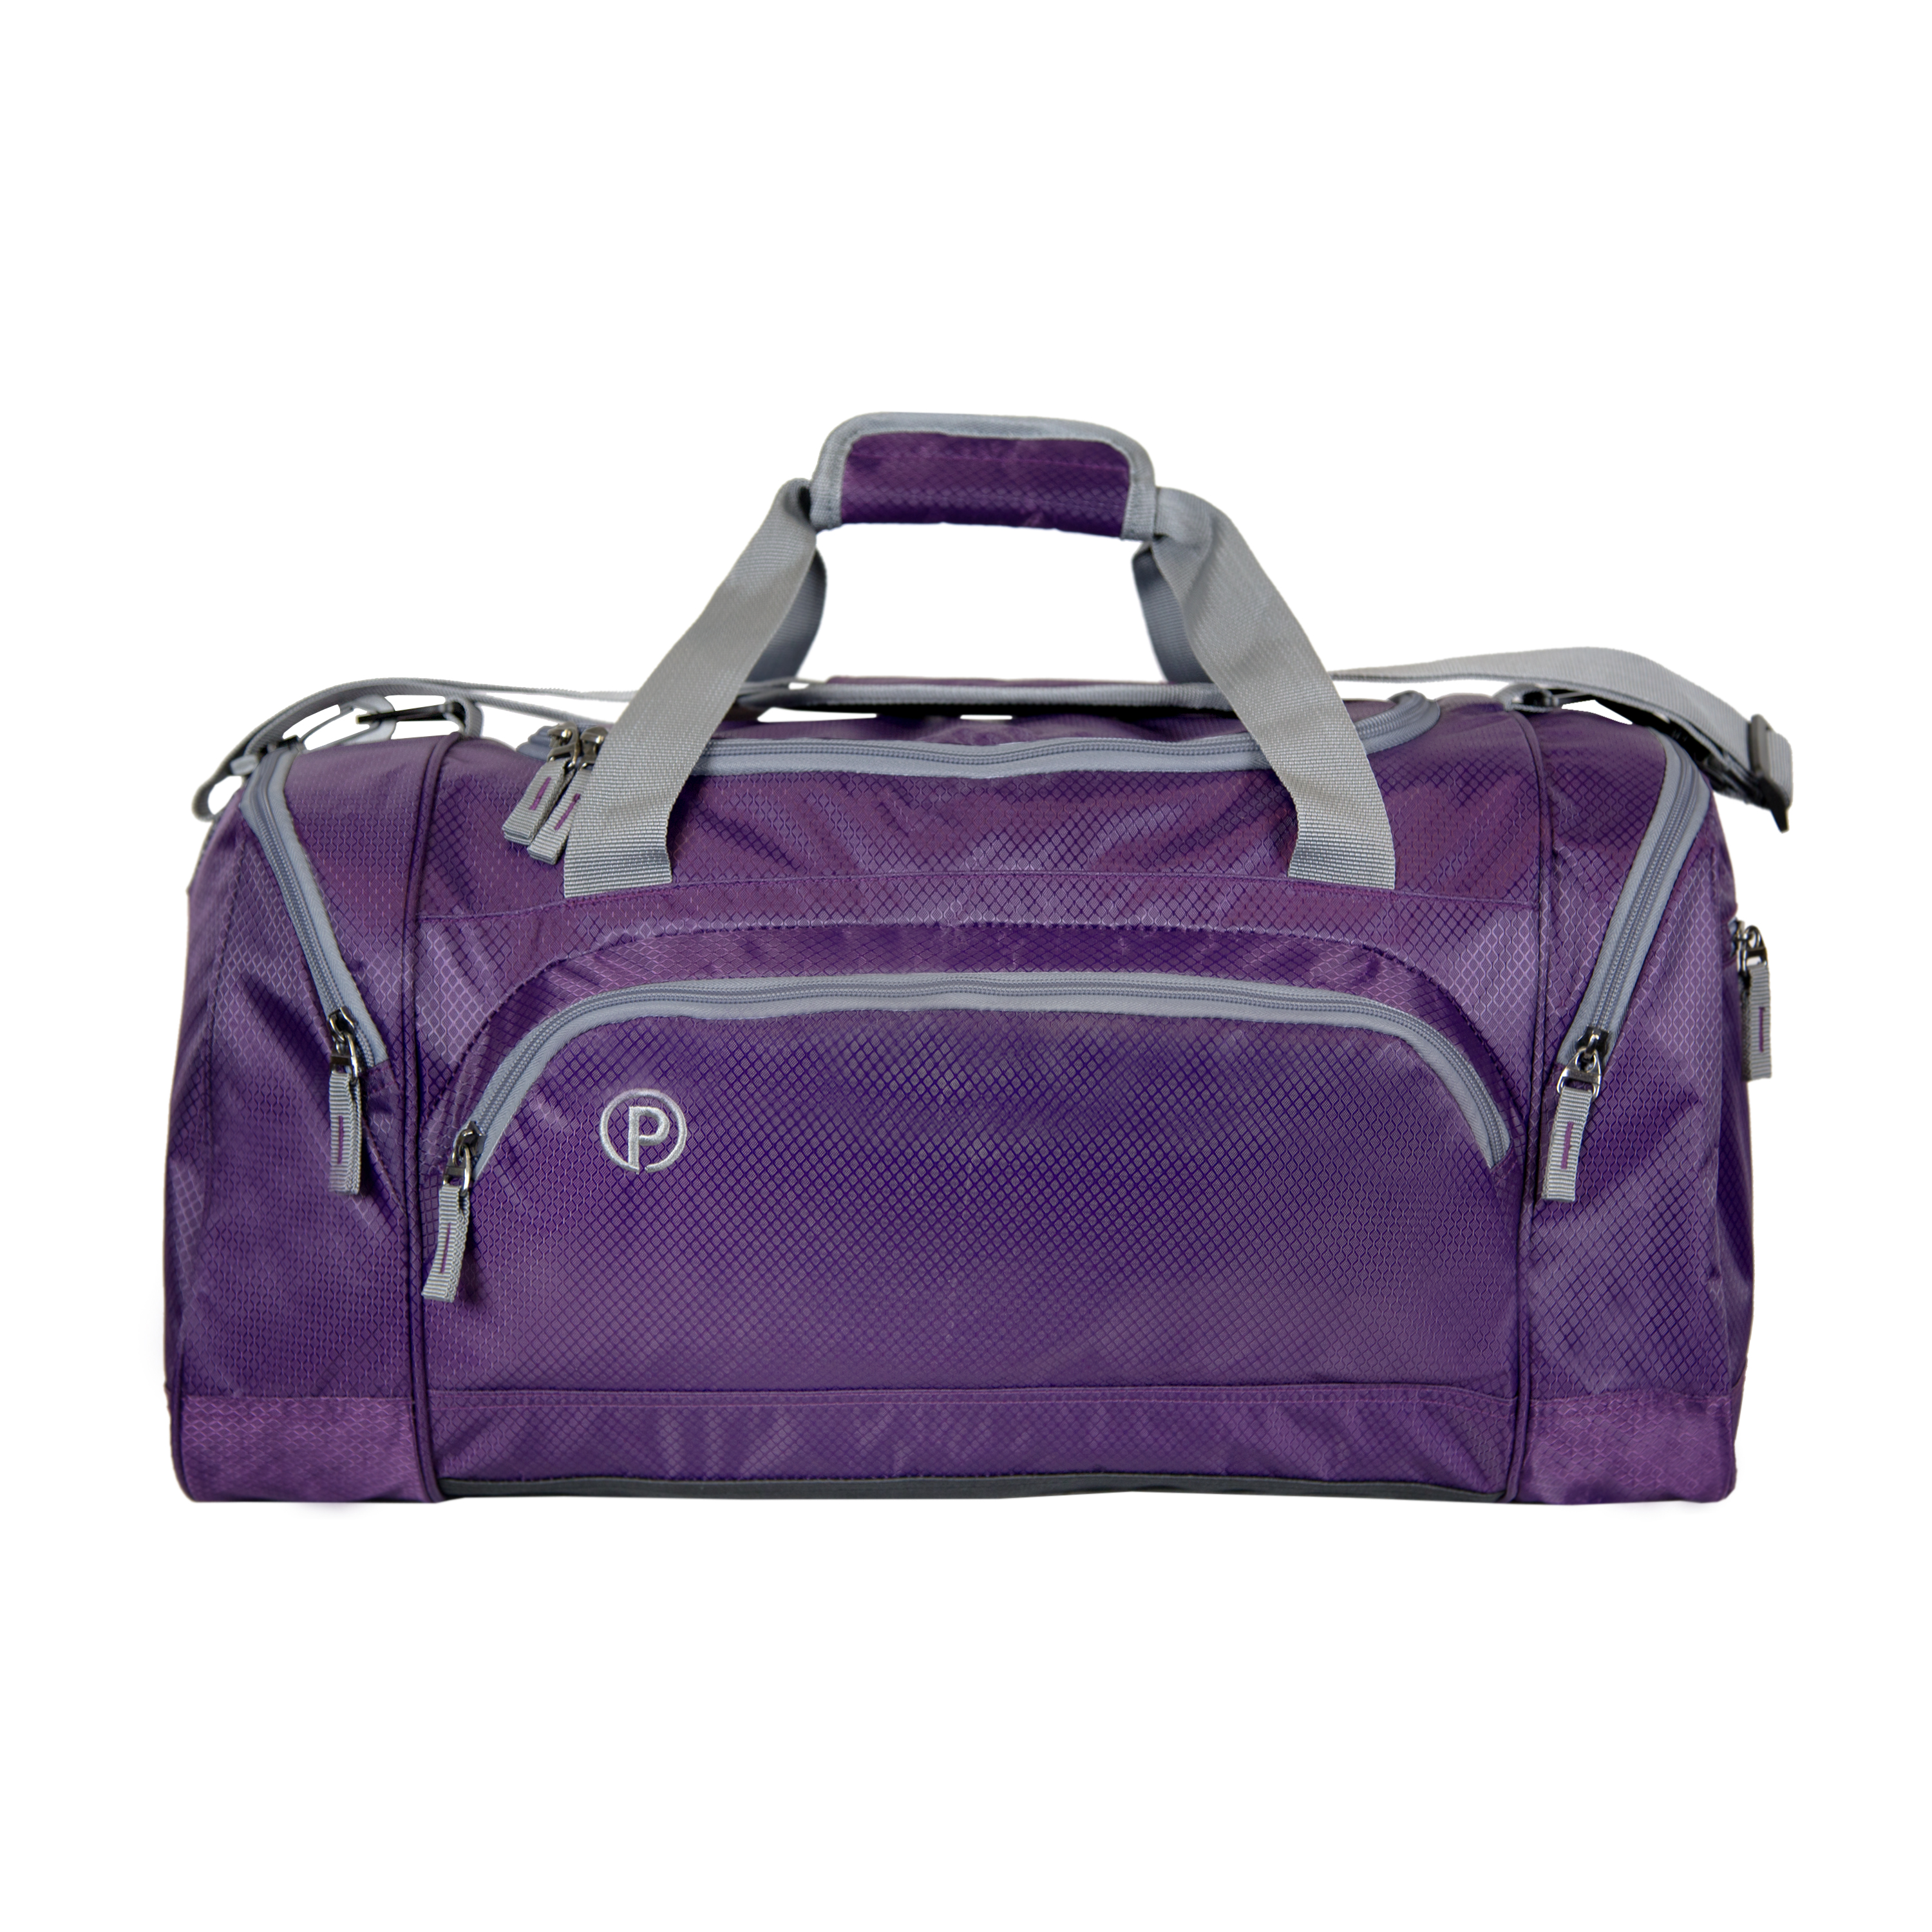 "Protege 22"" Duffel, Purple"